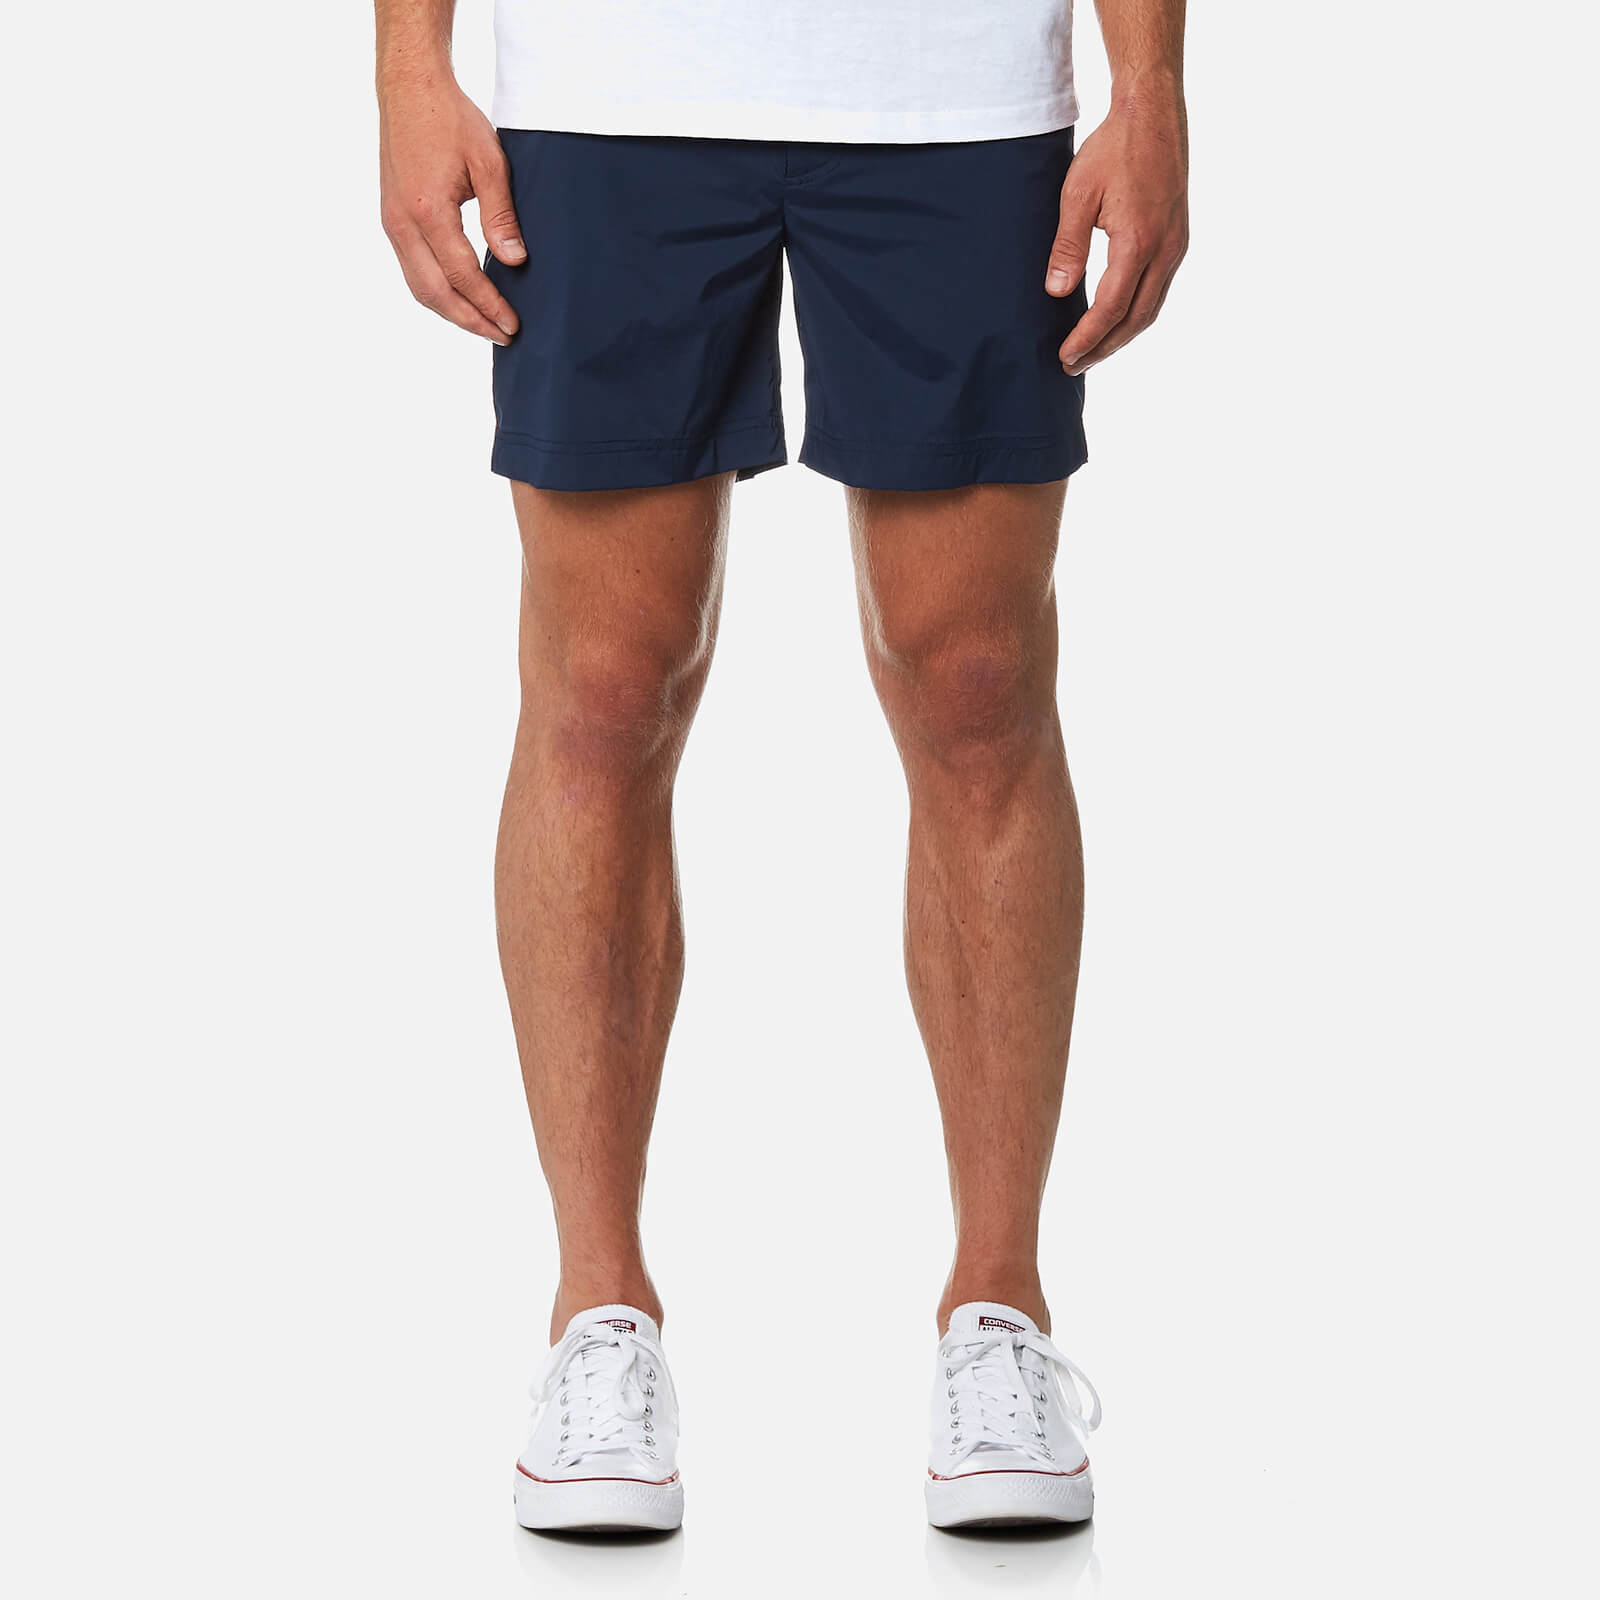 50c3fc7306f Orlebar Brown Men's Bulldog Sport Swim Shorts - Navy - Free UK Delivery  over £50